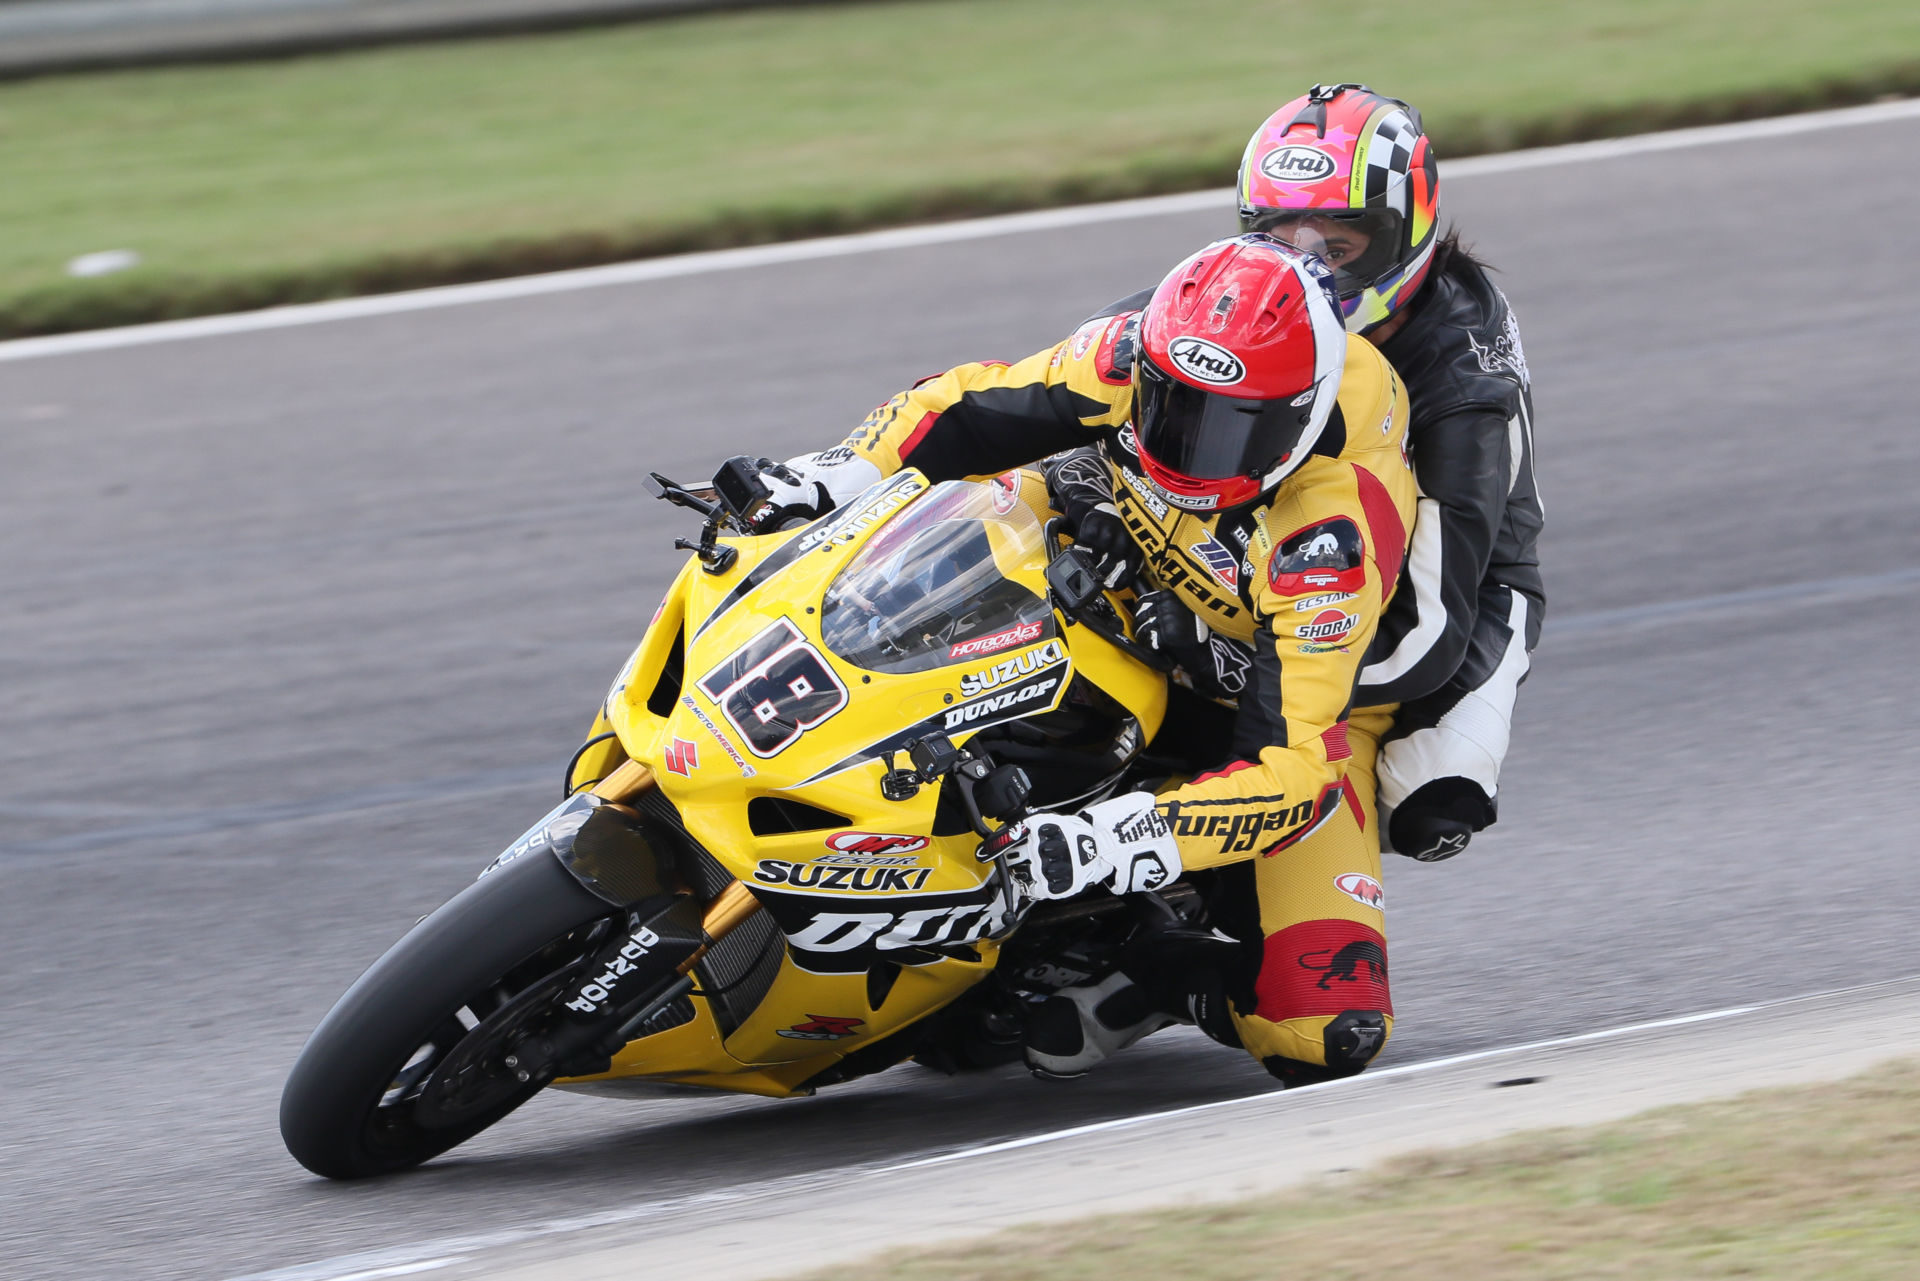 Chris Ulrich (18) giving a ride on his two-seat Dunlop M4 Suzuki GSX-R1000R Superbike at a MotoAmerica event. Photo by Brian J. Nelson.